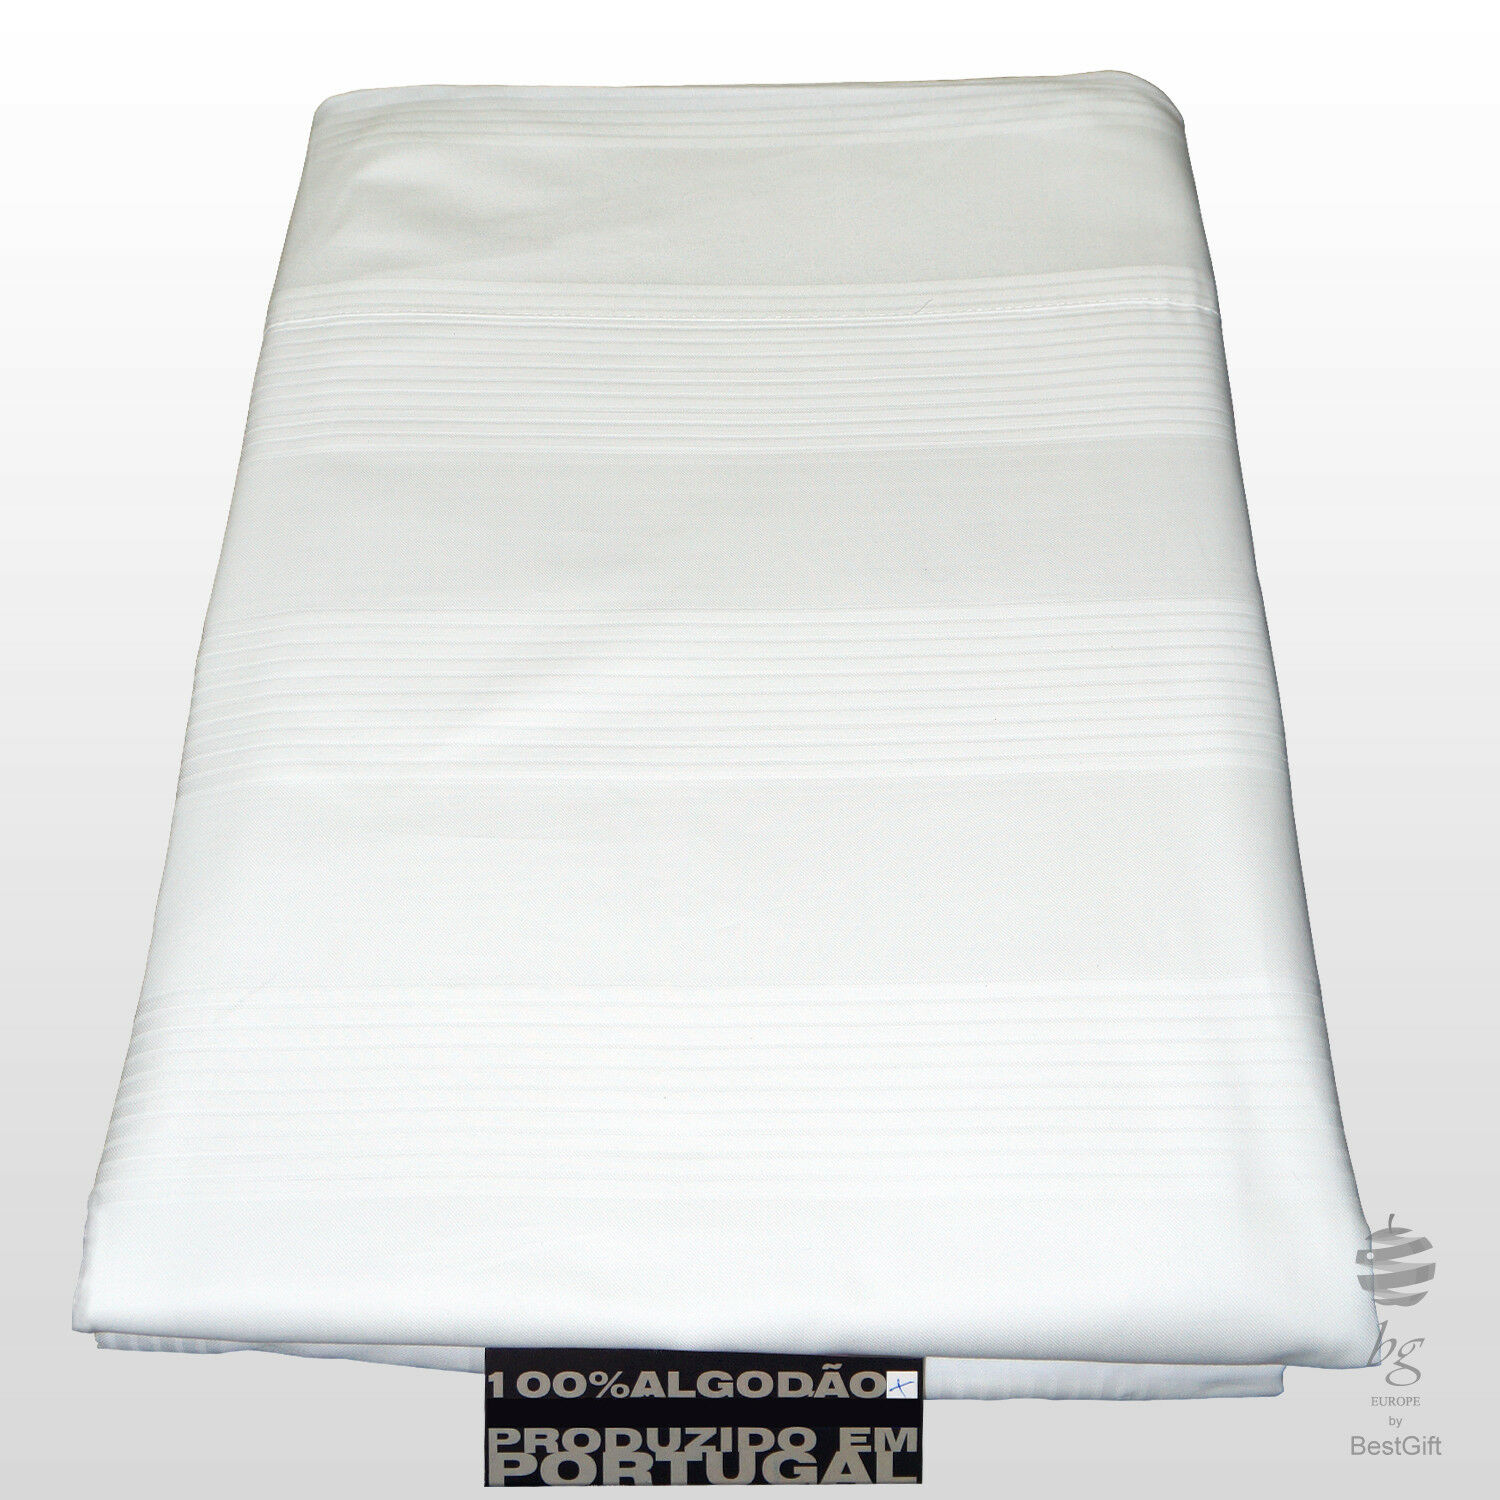 SET OF SINGLE SATIN BED SHEETS - 100% PERCALE COTTON - STRIPES PATTERN